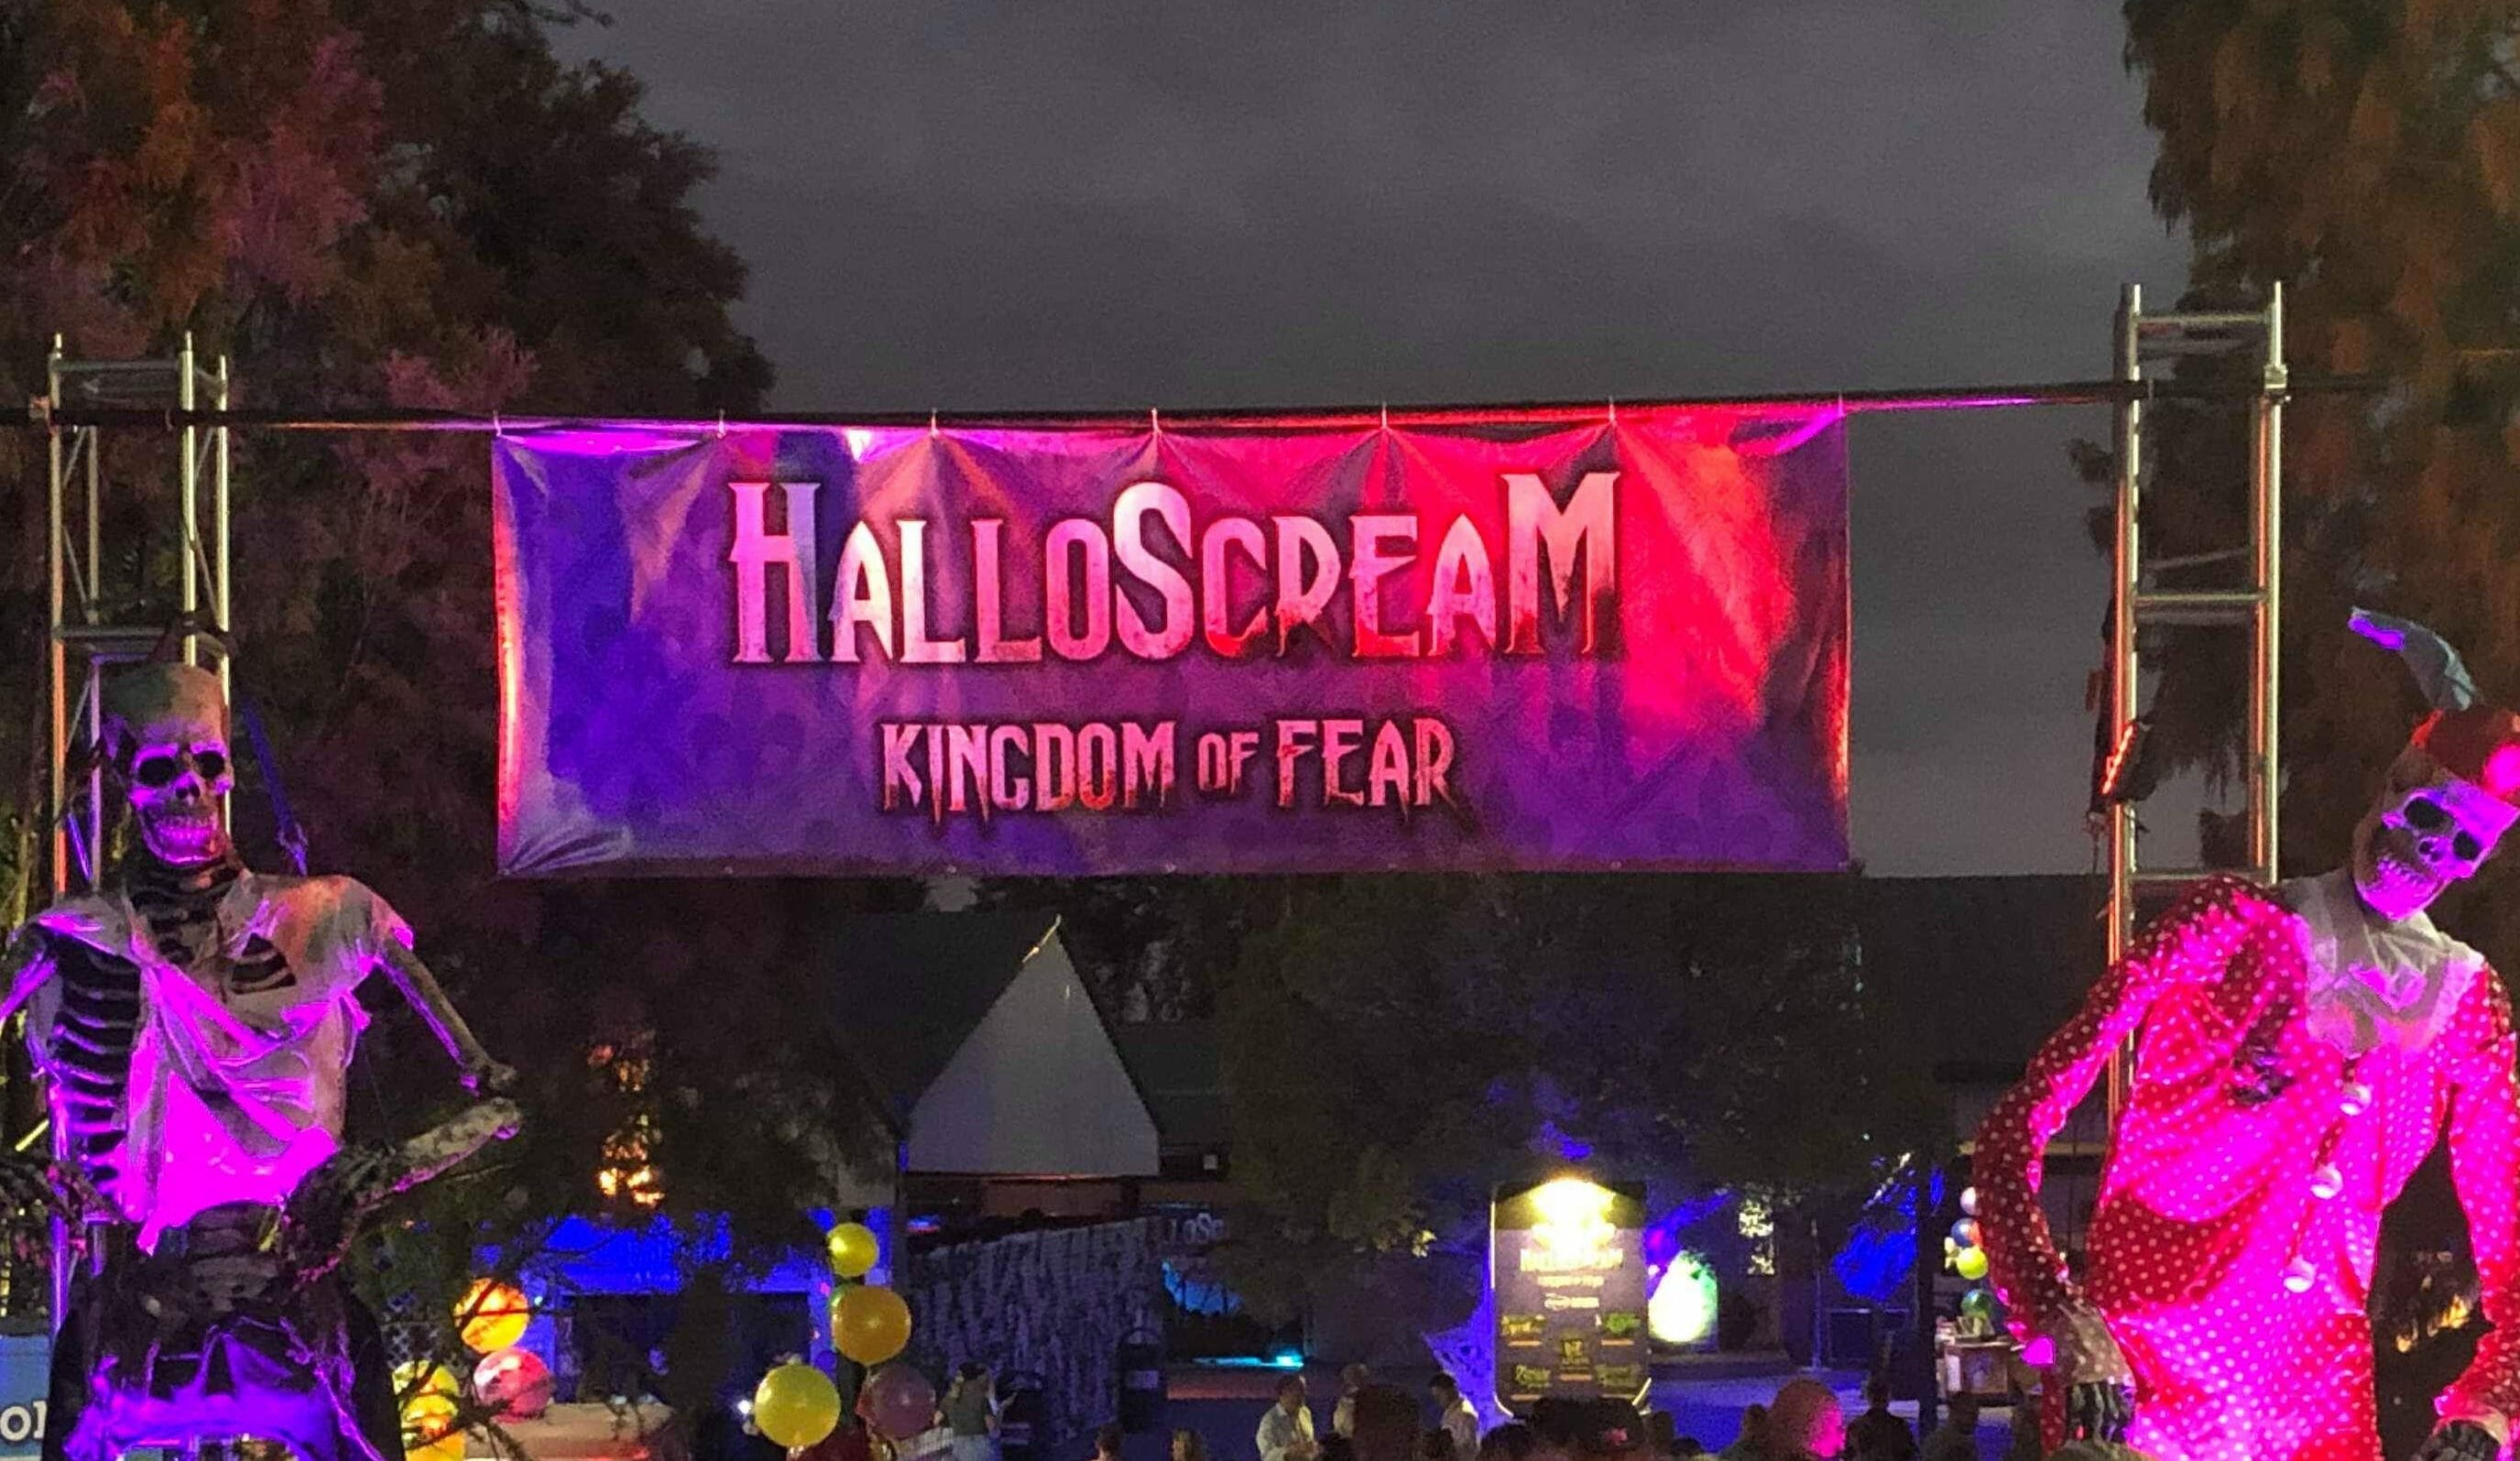 Kentucky Kingdom Introduces New HalloScream Halloween Event